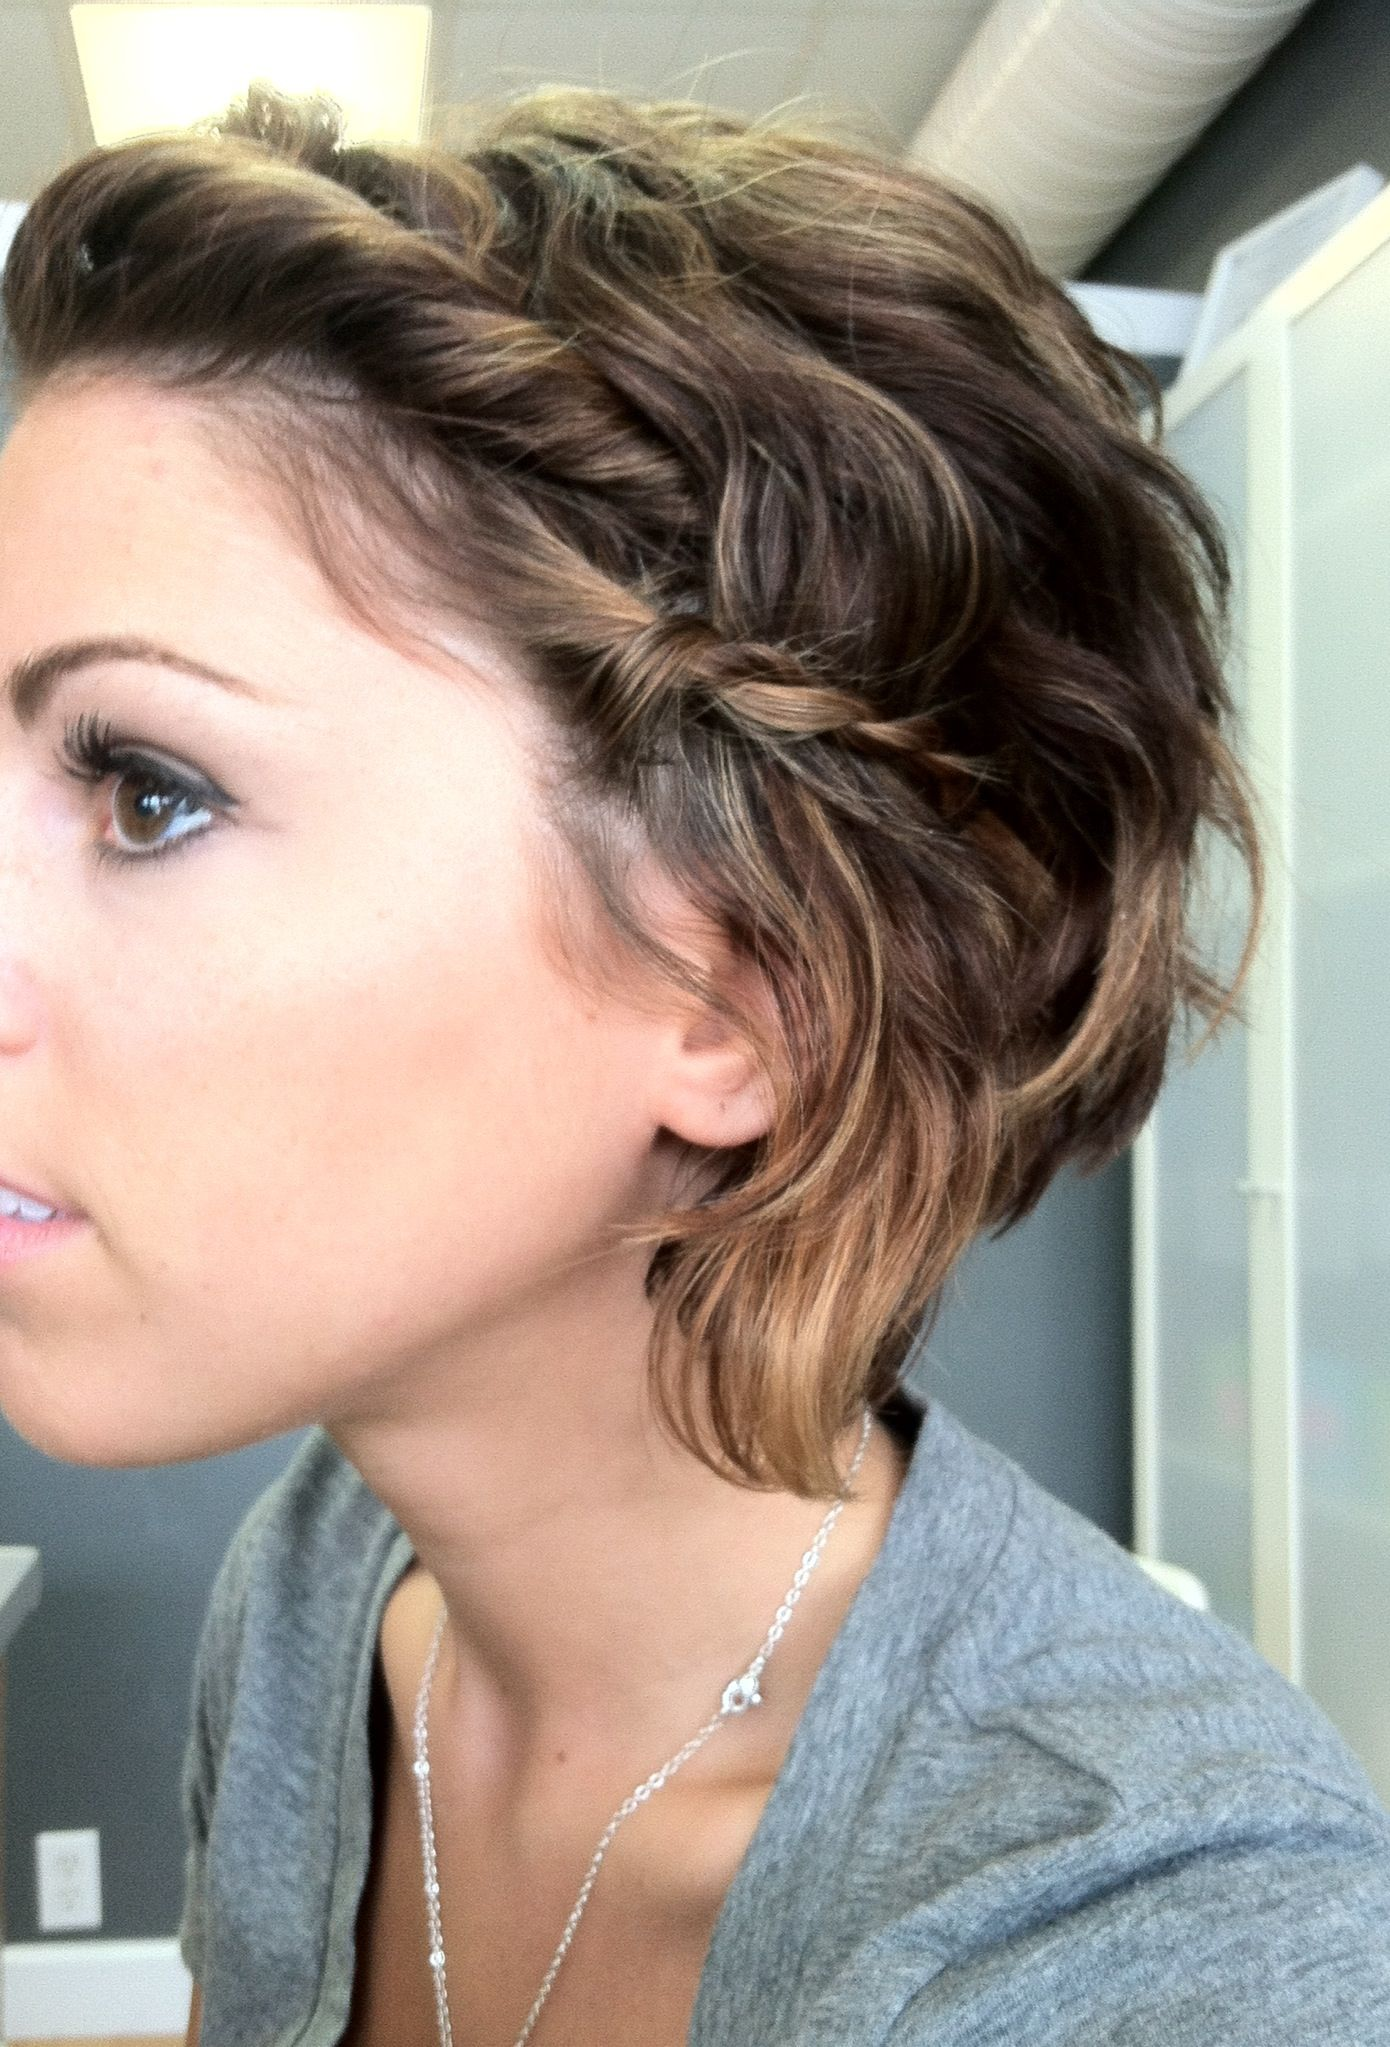 Short hair trends for chic short cuts you should not miss